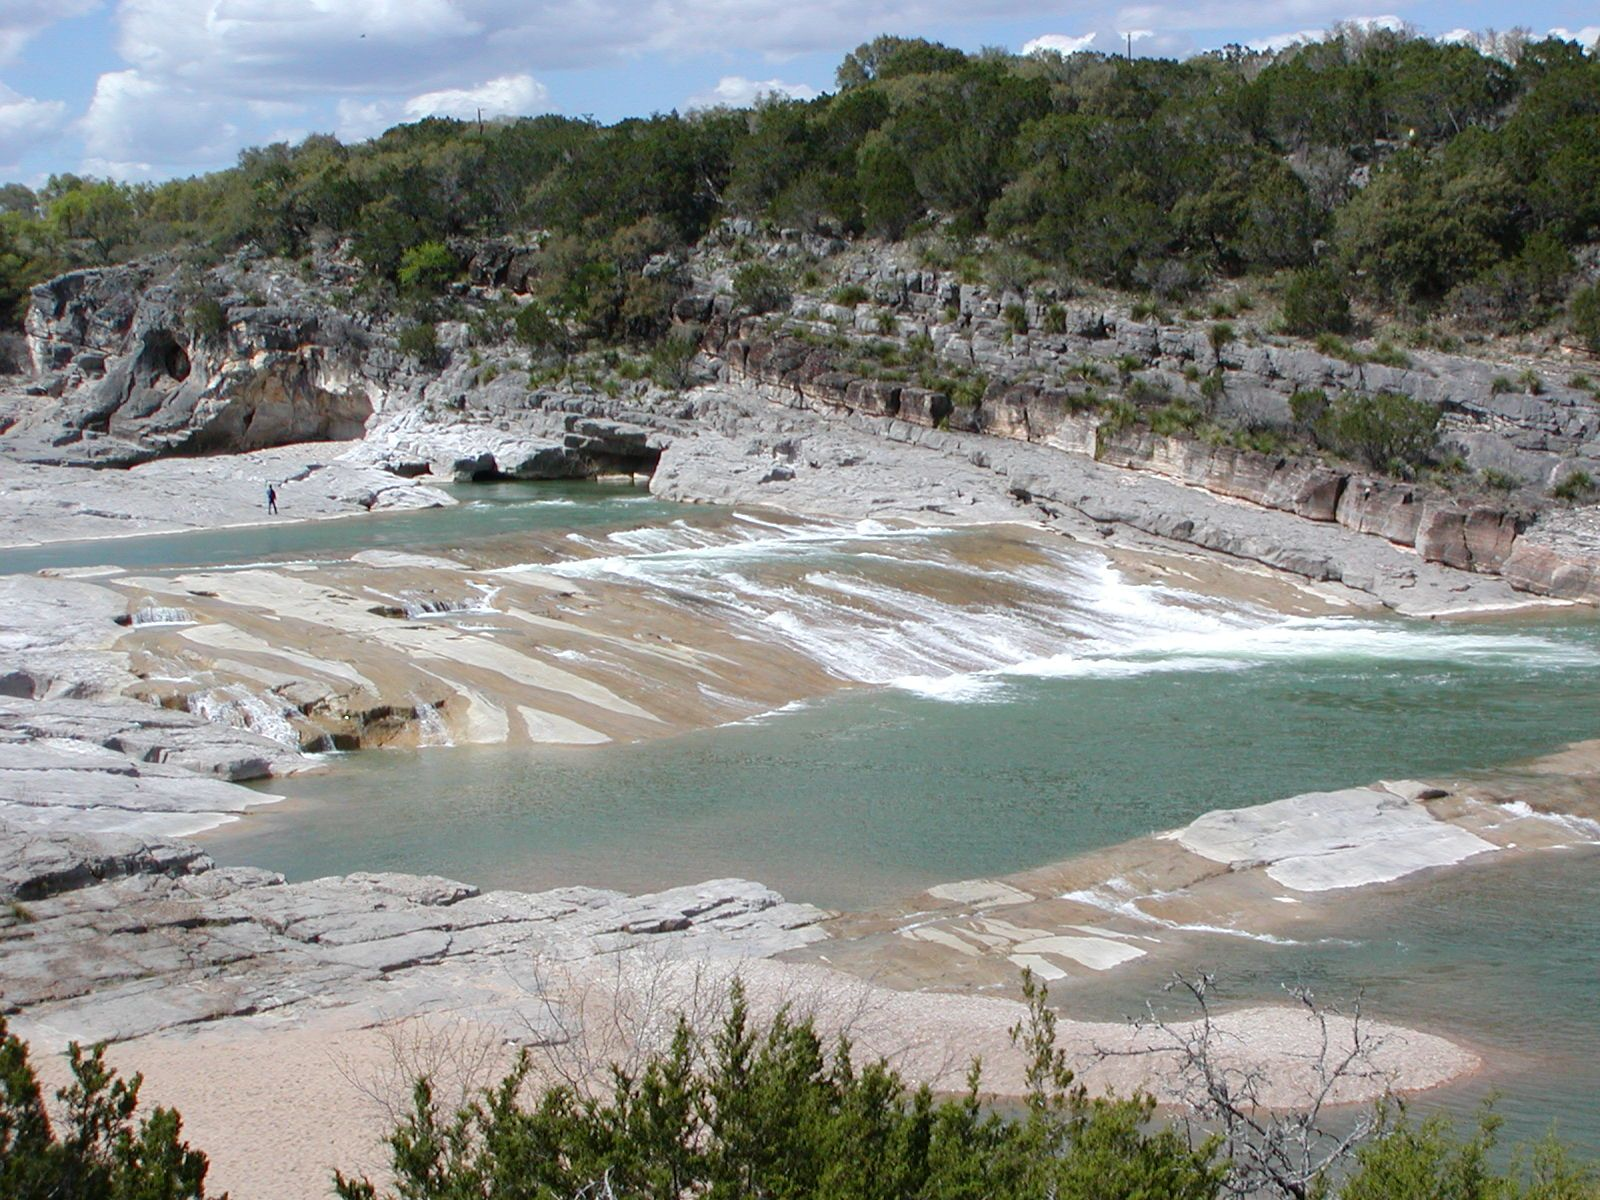 Located On The Pedernales River At The Bridge On Hwy 281 Just N Of Town And Next To The Blanco County Show B Pedernales Falls State Park State Parks Pedernales